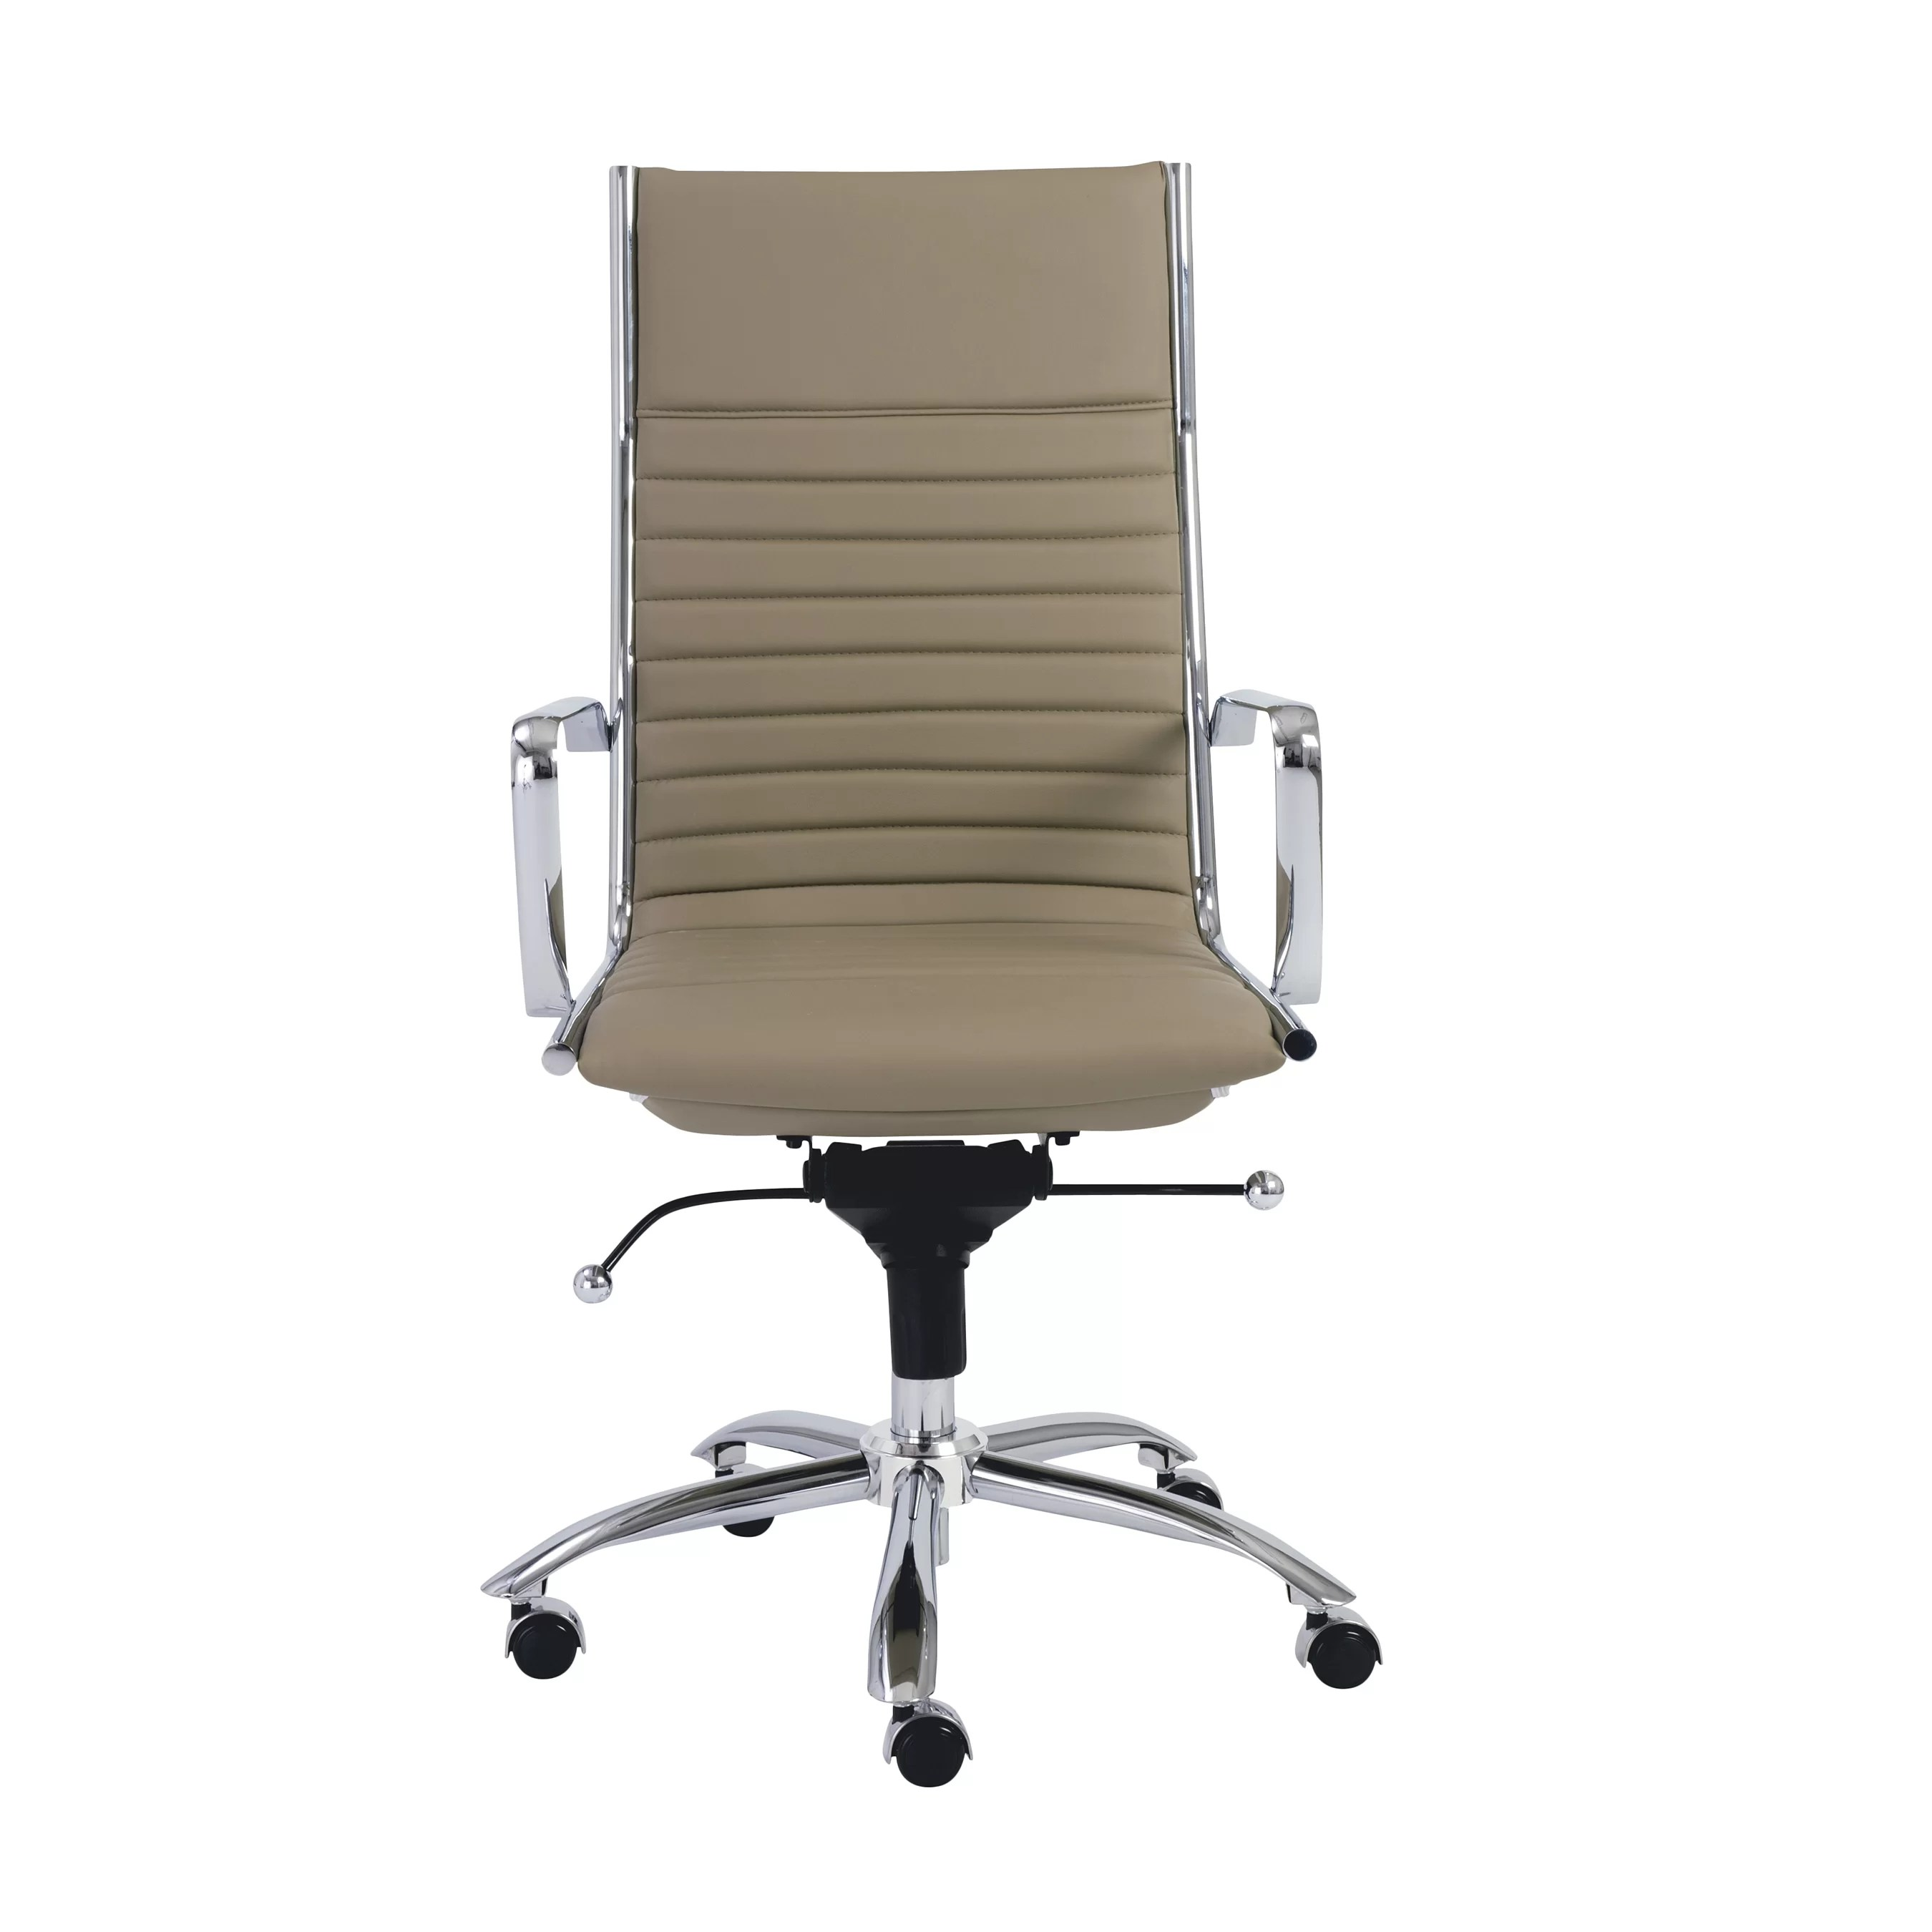 High Back Desk Chair Eurostyle Dirk High Back Office Chair And Reviews Wayfair